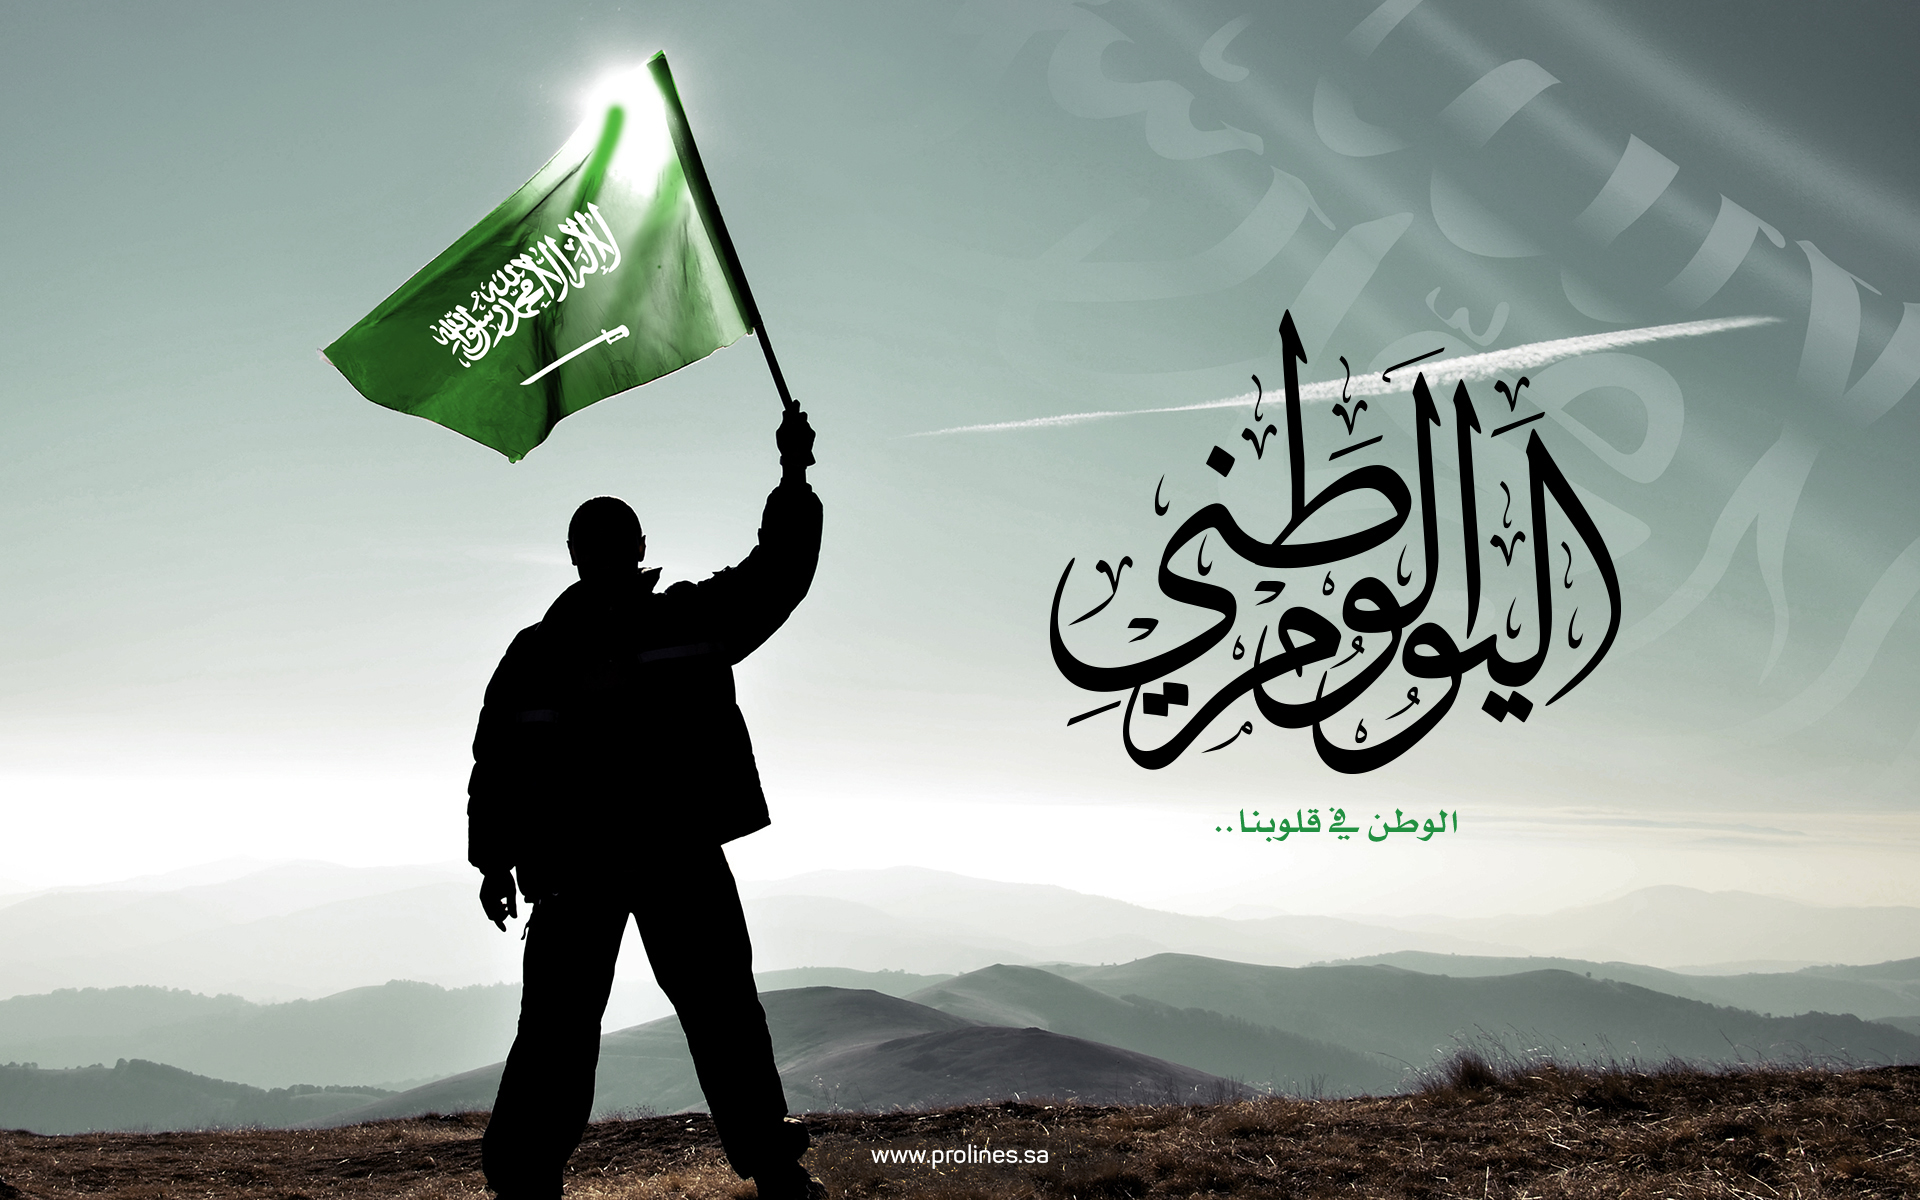 saudi arabia national day essay Below is an essay on national day in saudi arabia‏ from anti essays, your source for research papers, essays, and term paper examples saudi national day.